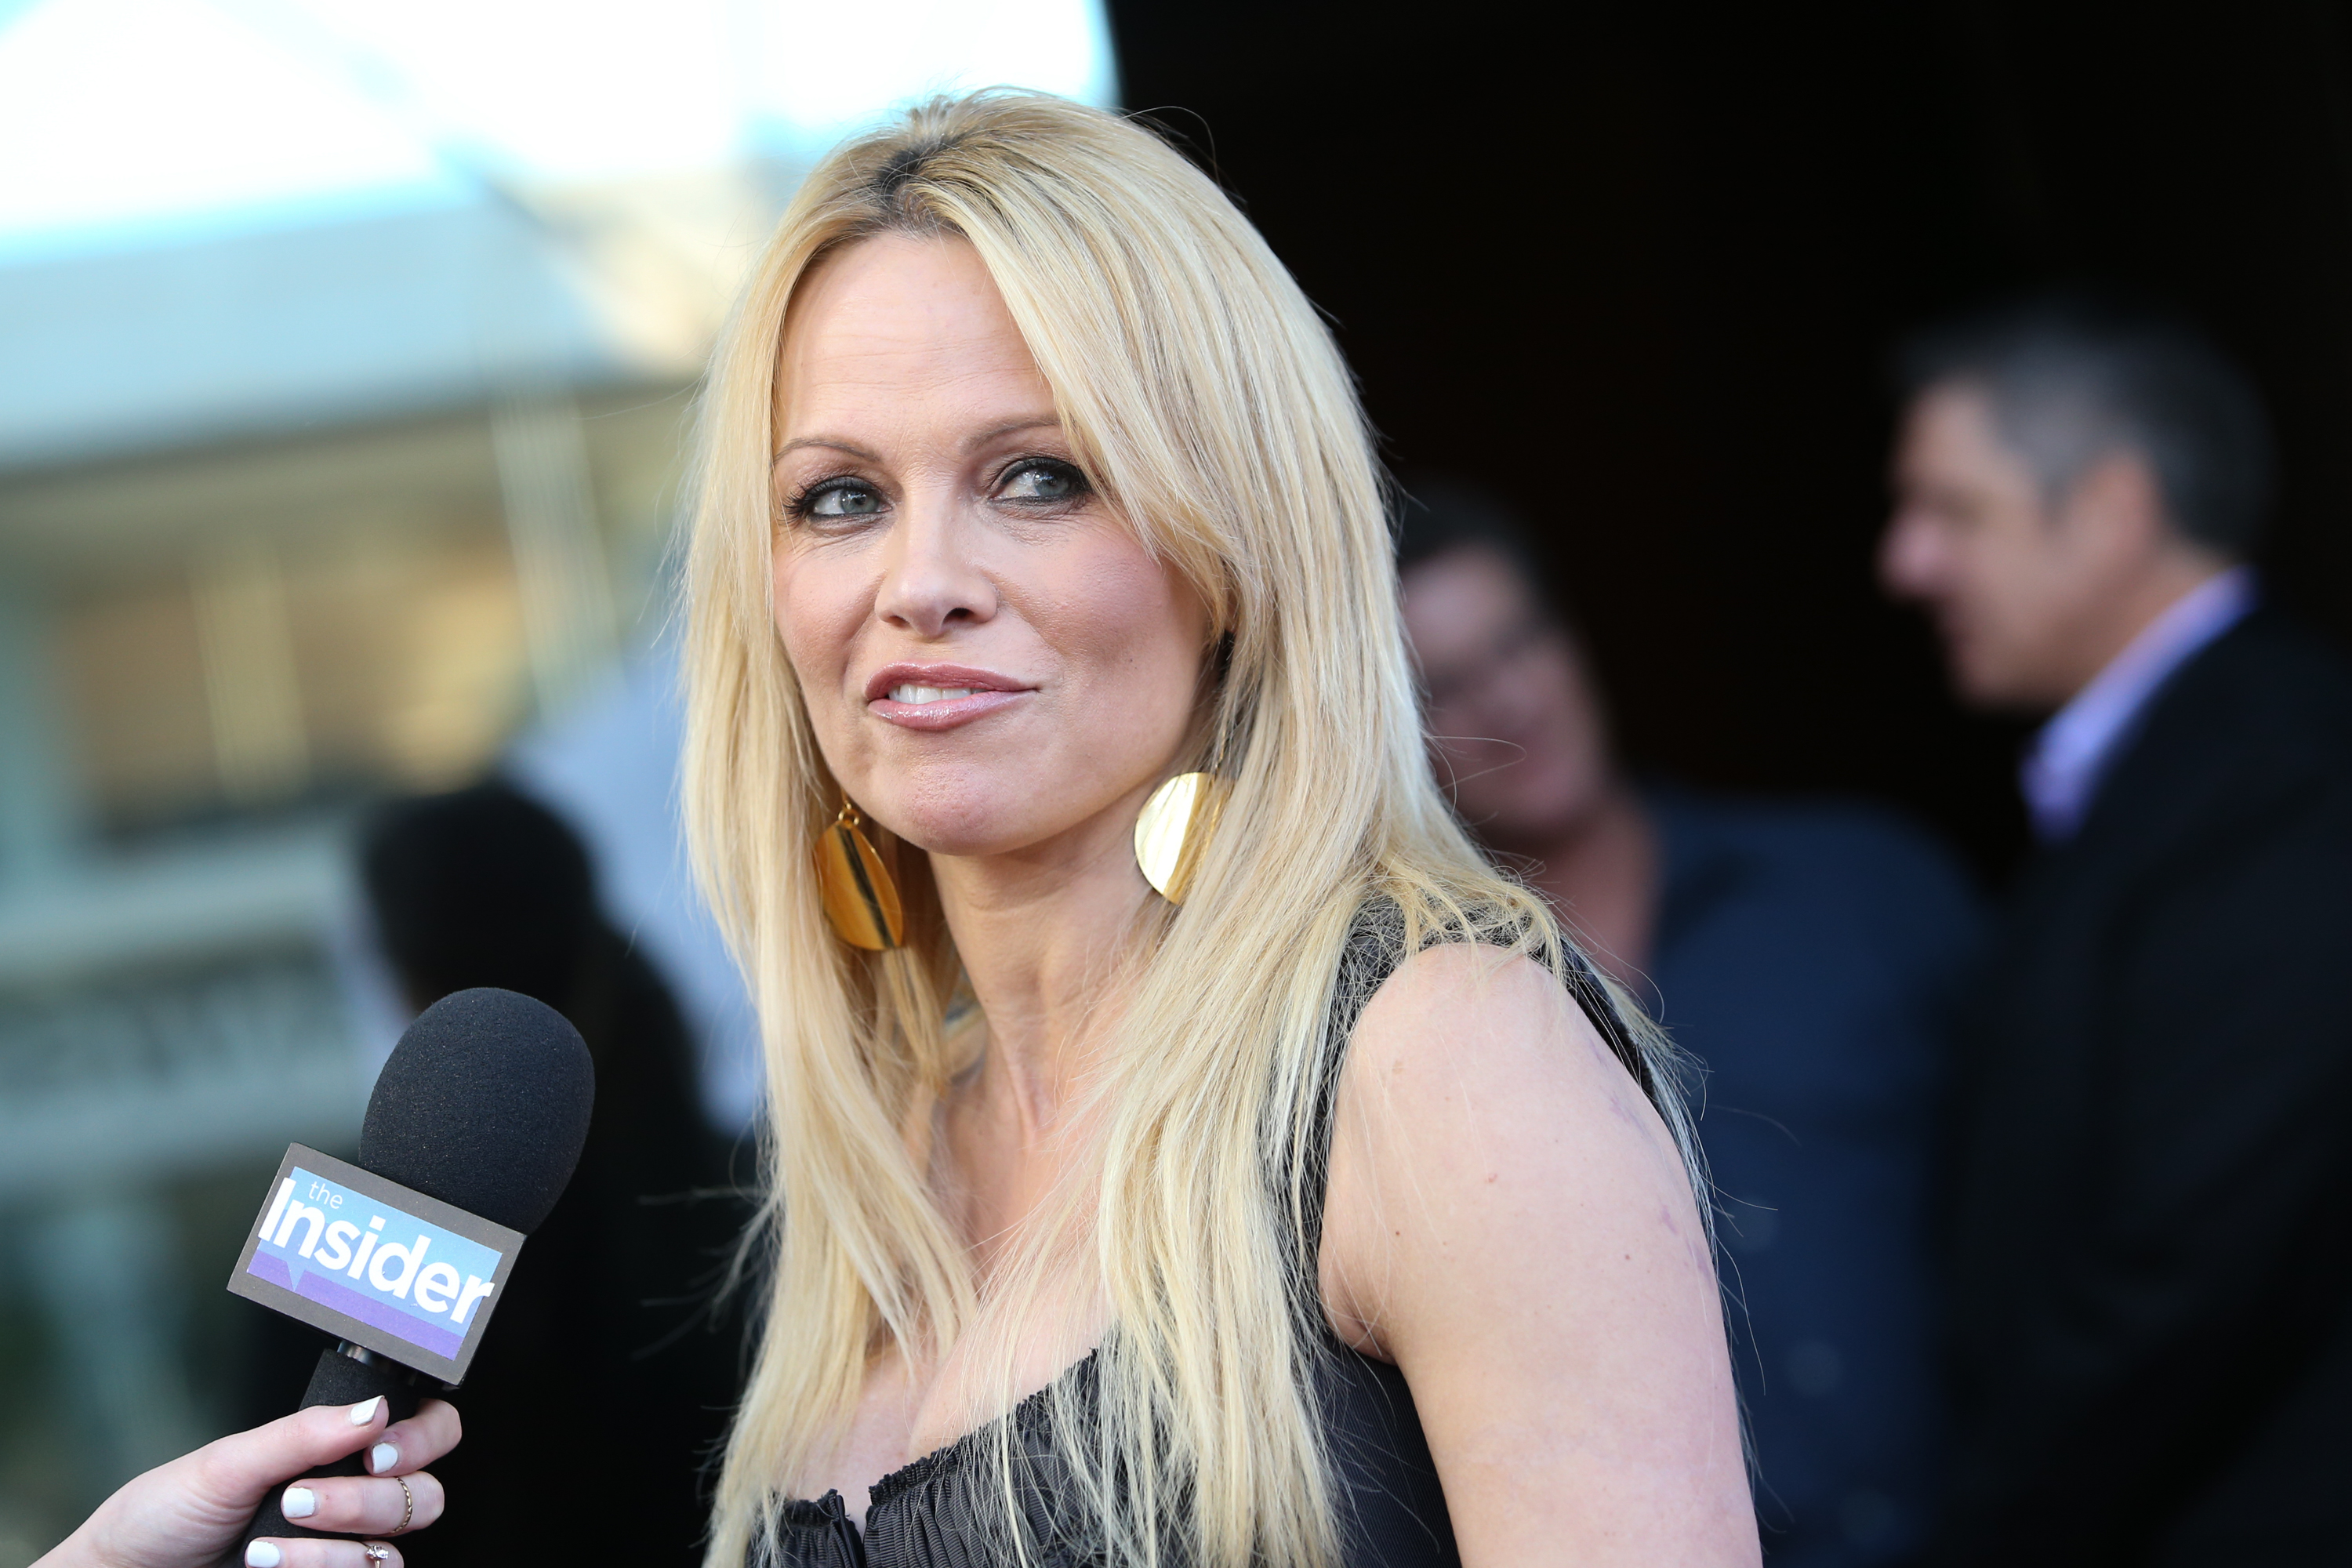 Pamela Anderson in June 2015.